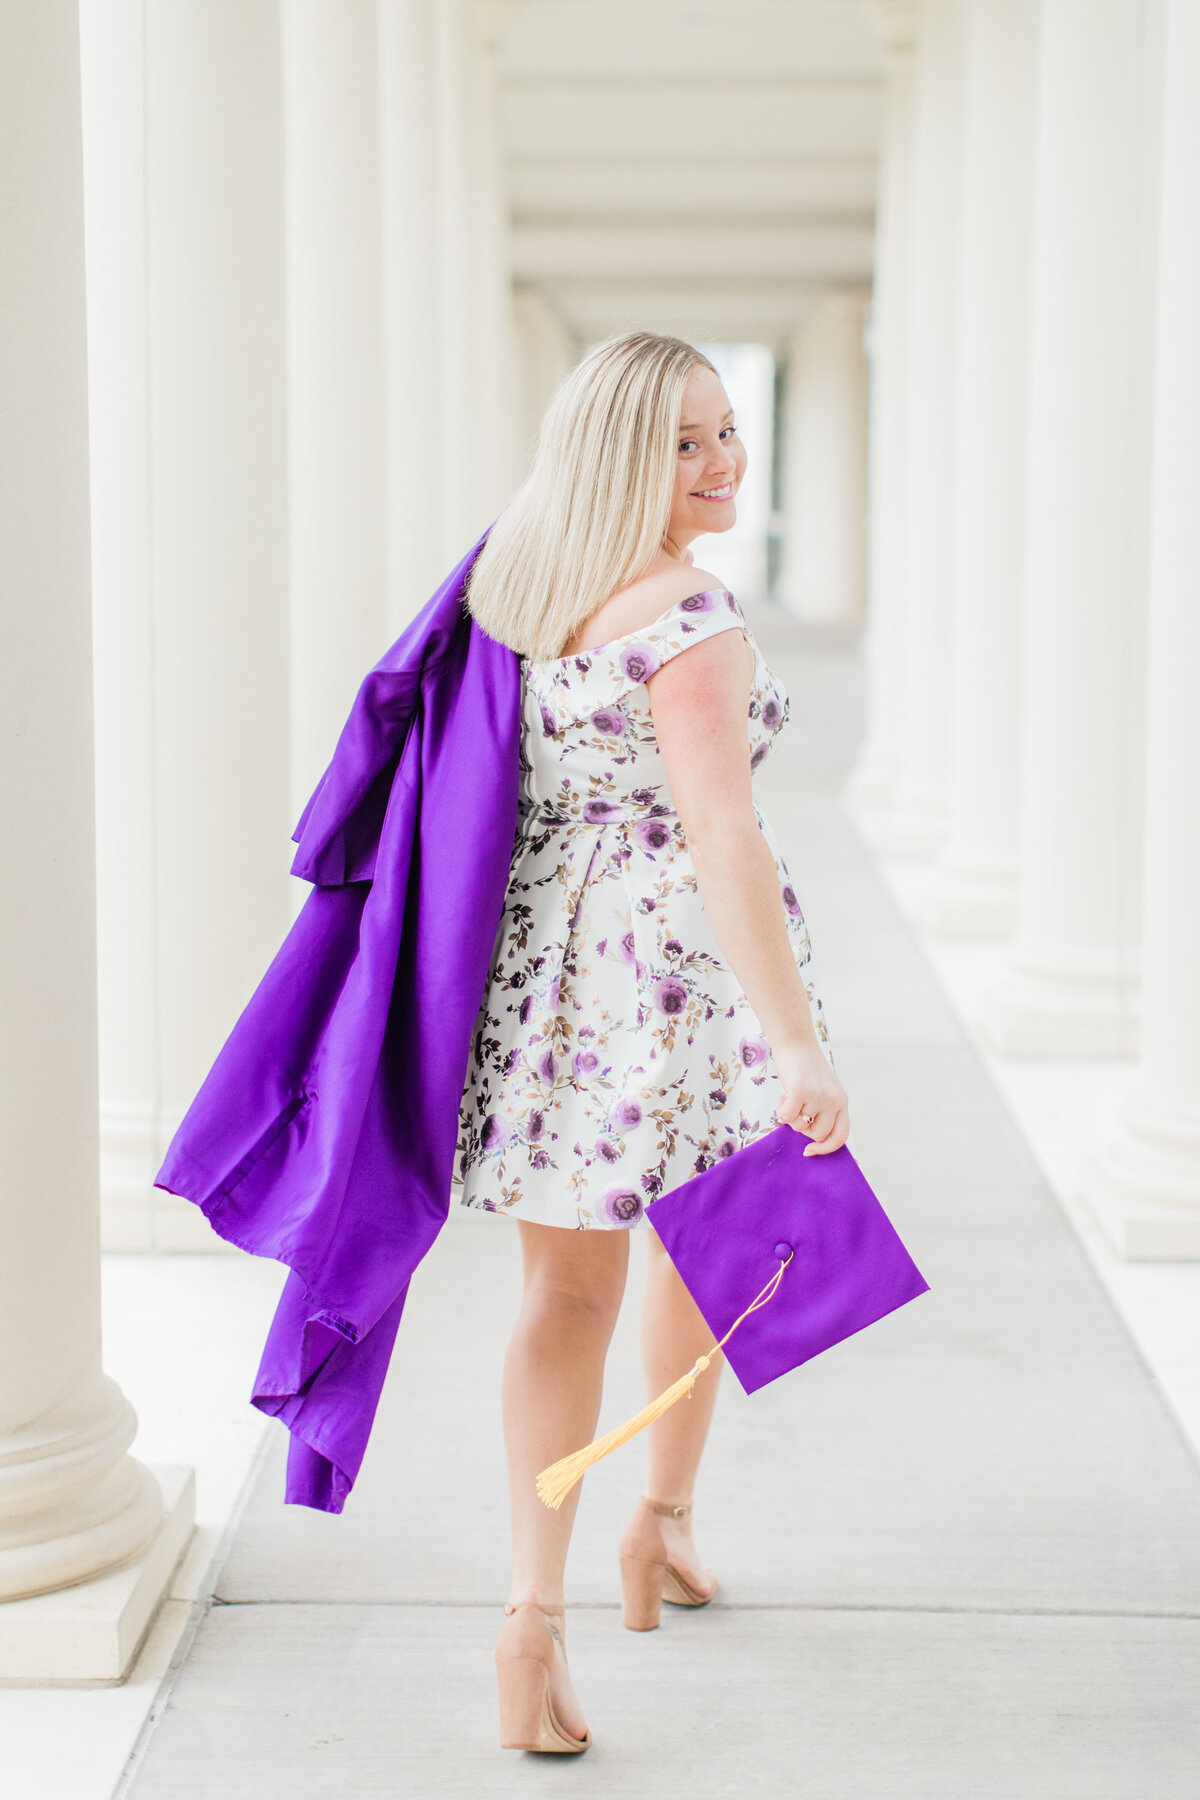 Janna_JMU_Senior_Pictures_2020_Angelika_Johns_Photography-1524